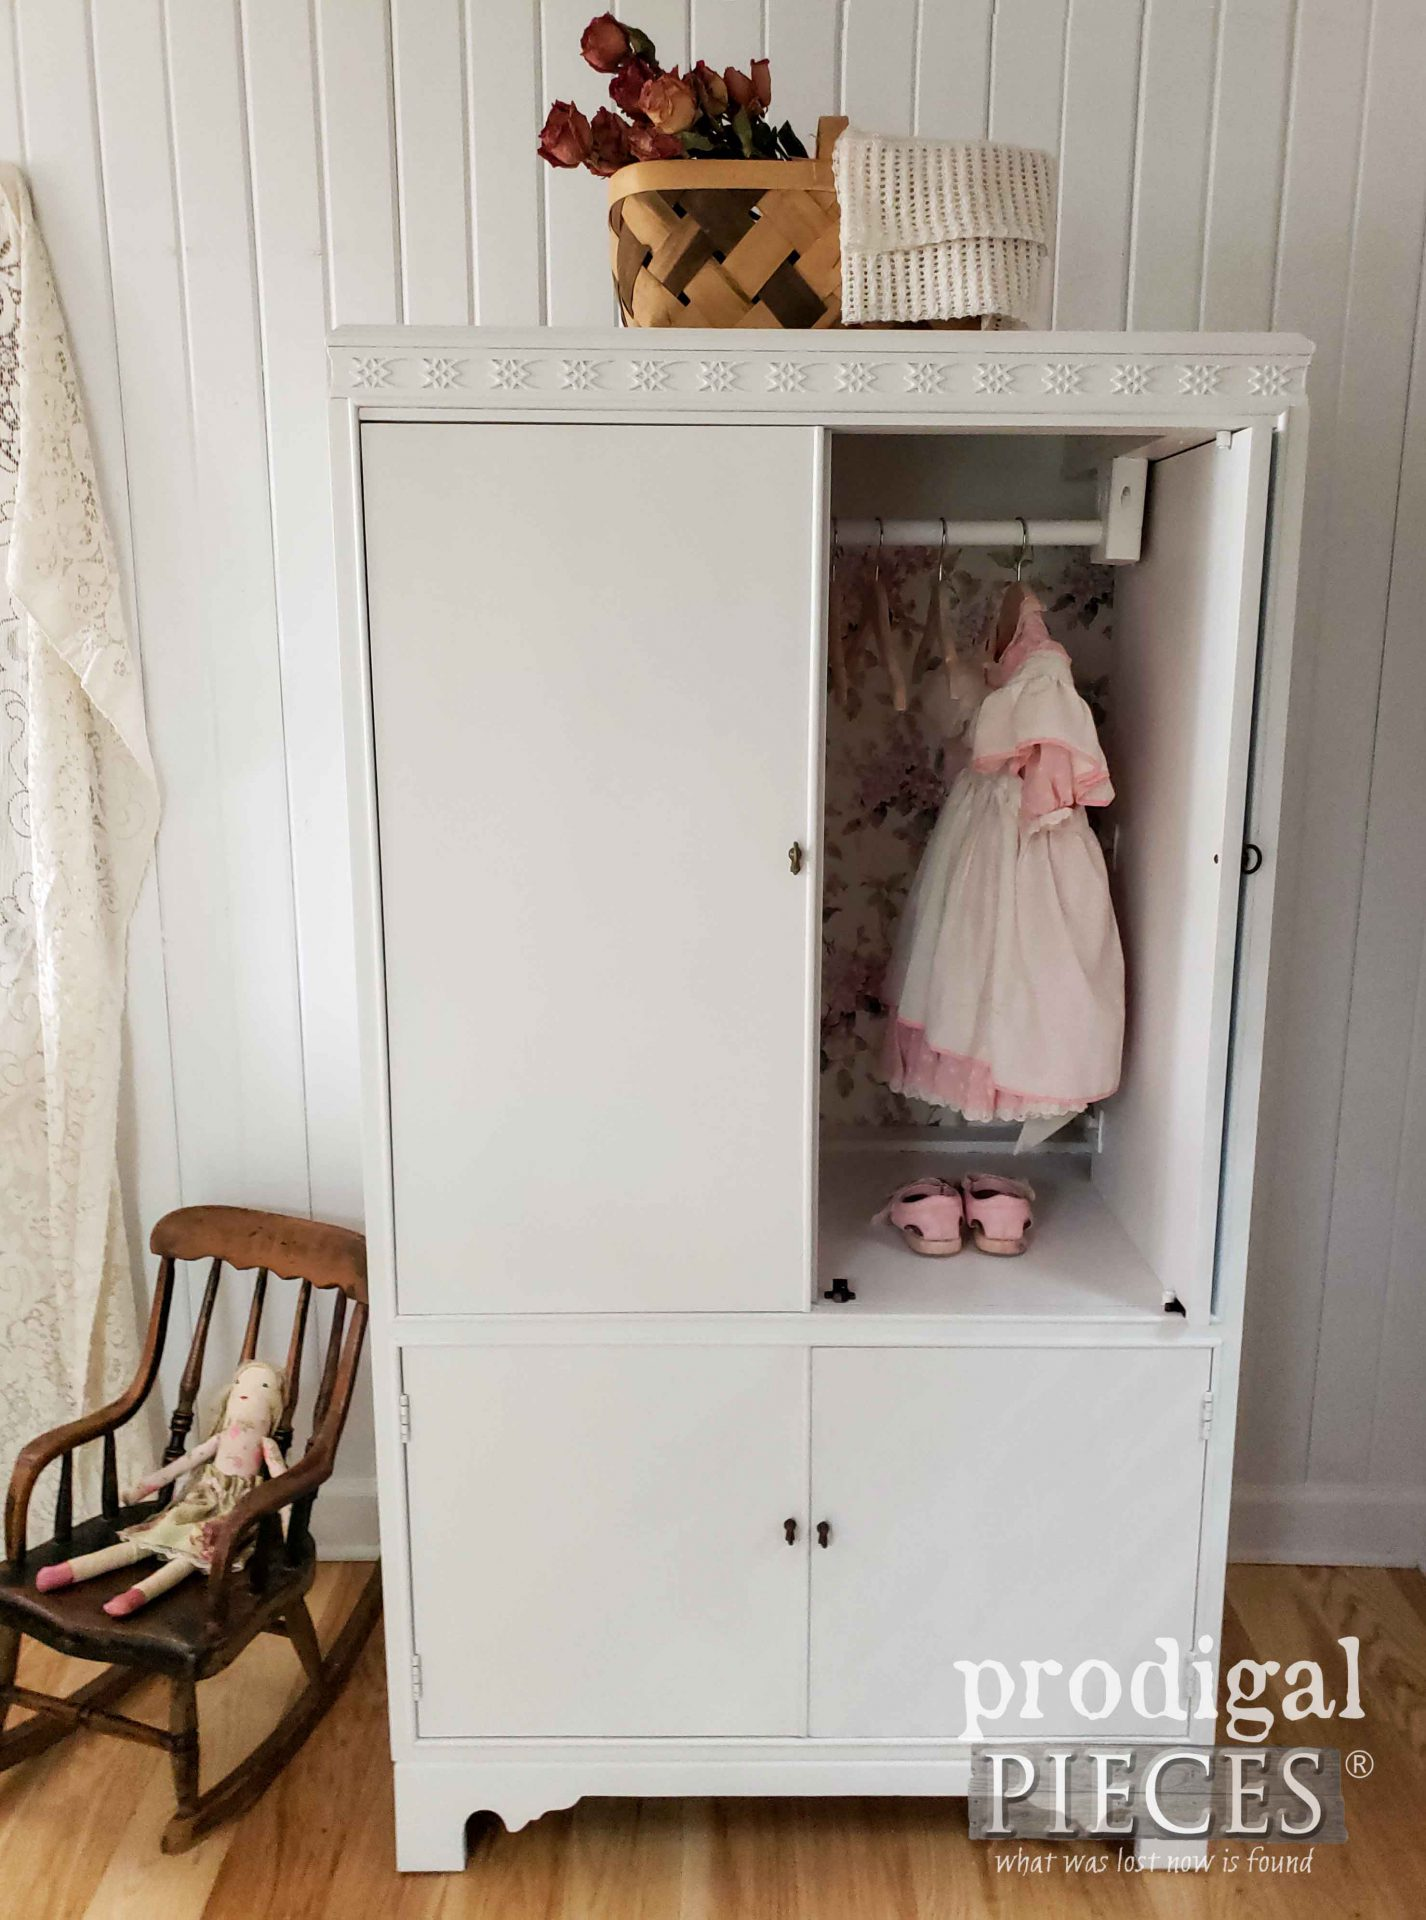 Vintage White Wardrobe for Baby Girl by Larissa of Prodigal Pieces | prodigalpieces.com #prodigalpieces #furniture #home #baby #girl #nursery #homedecor